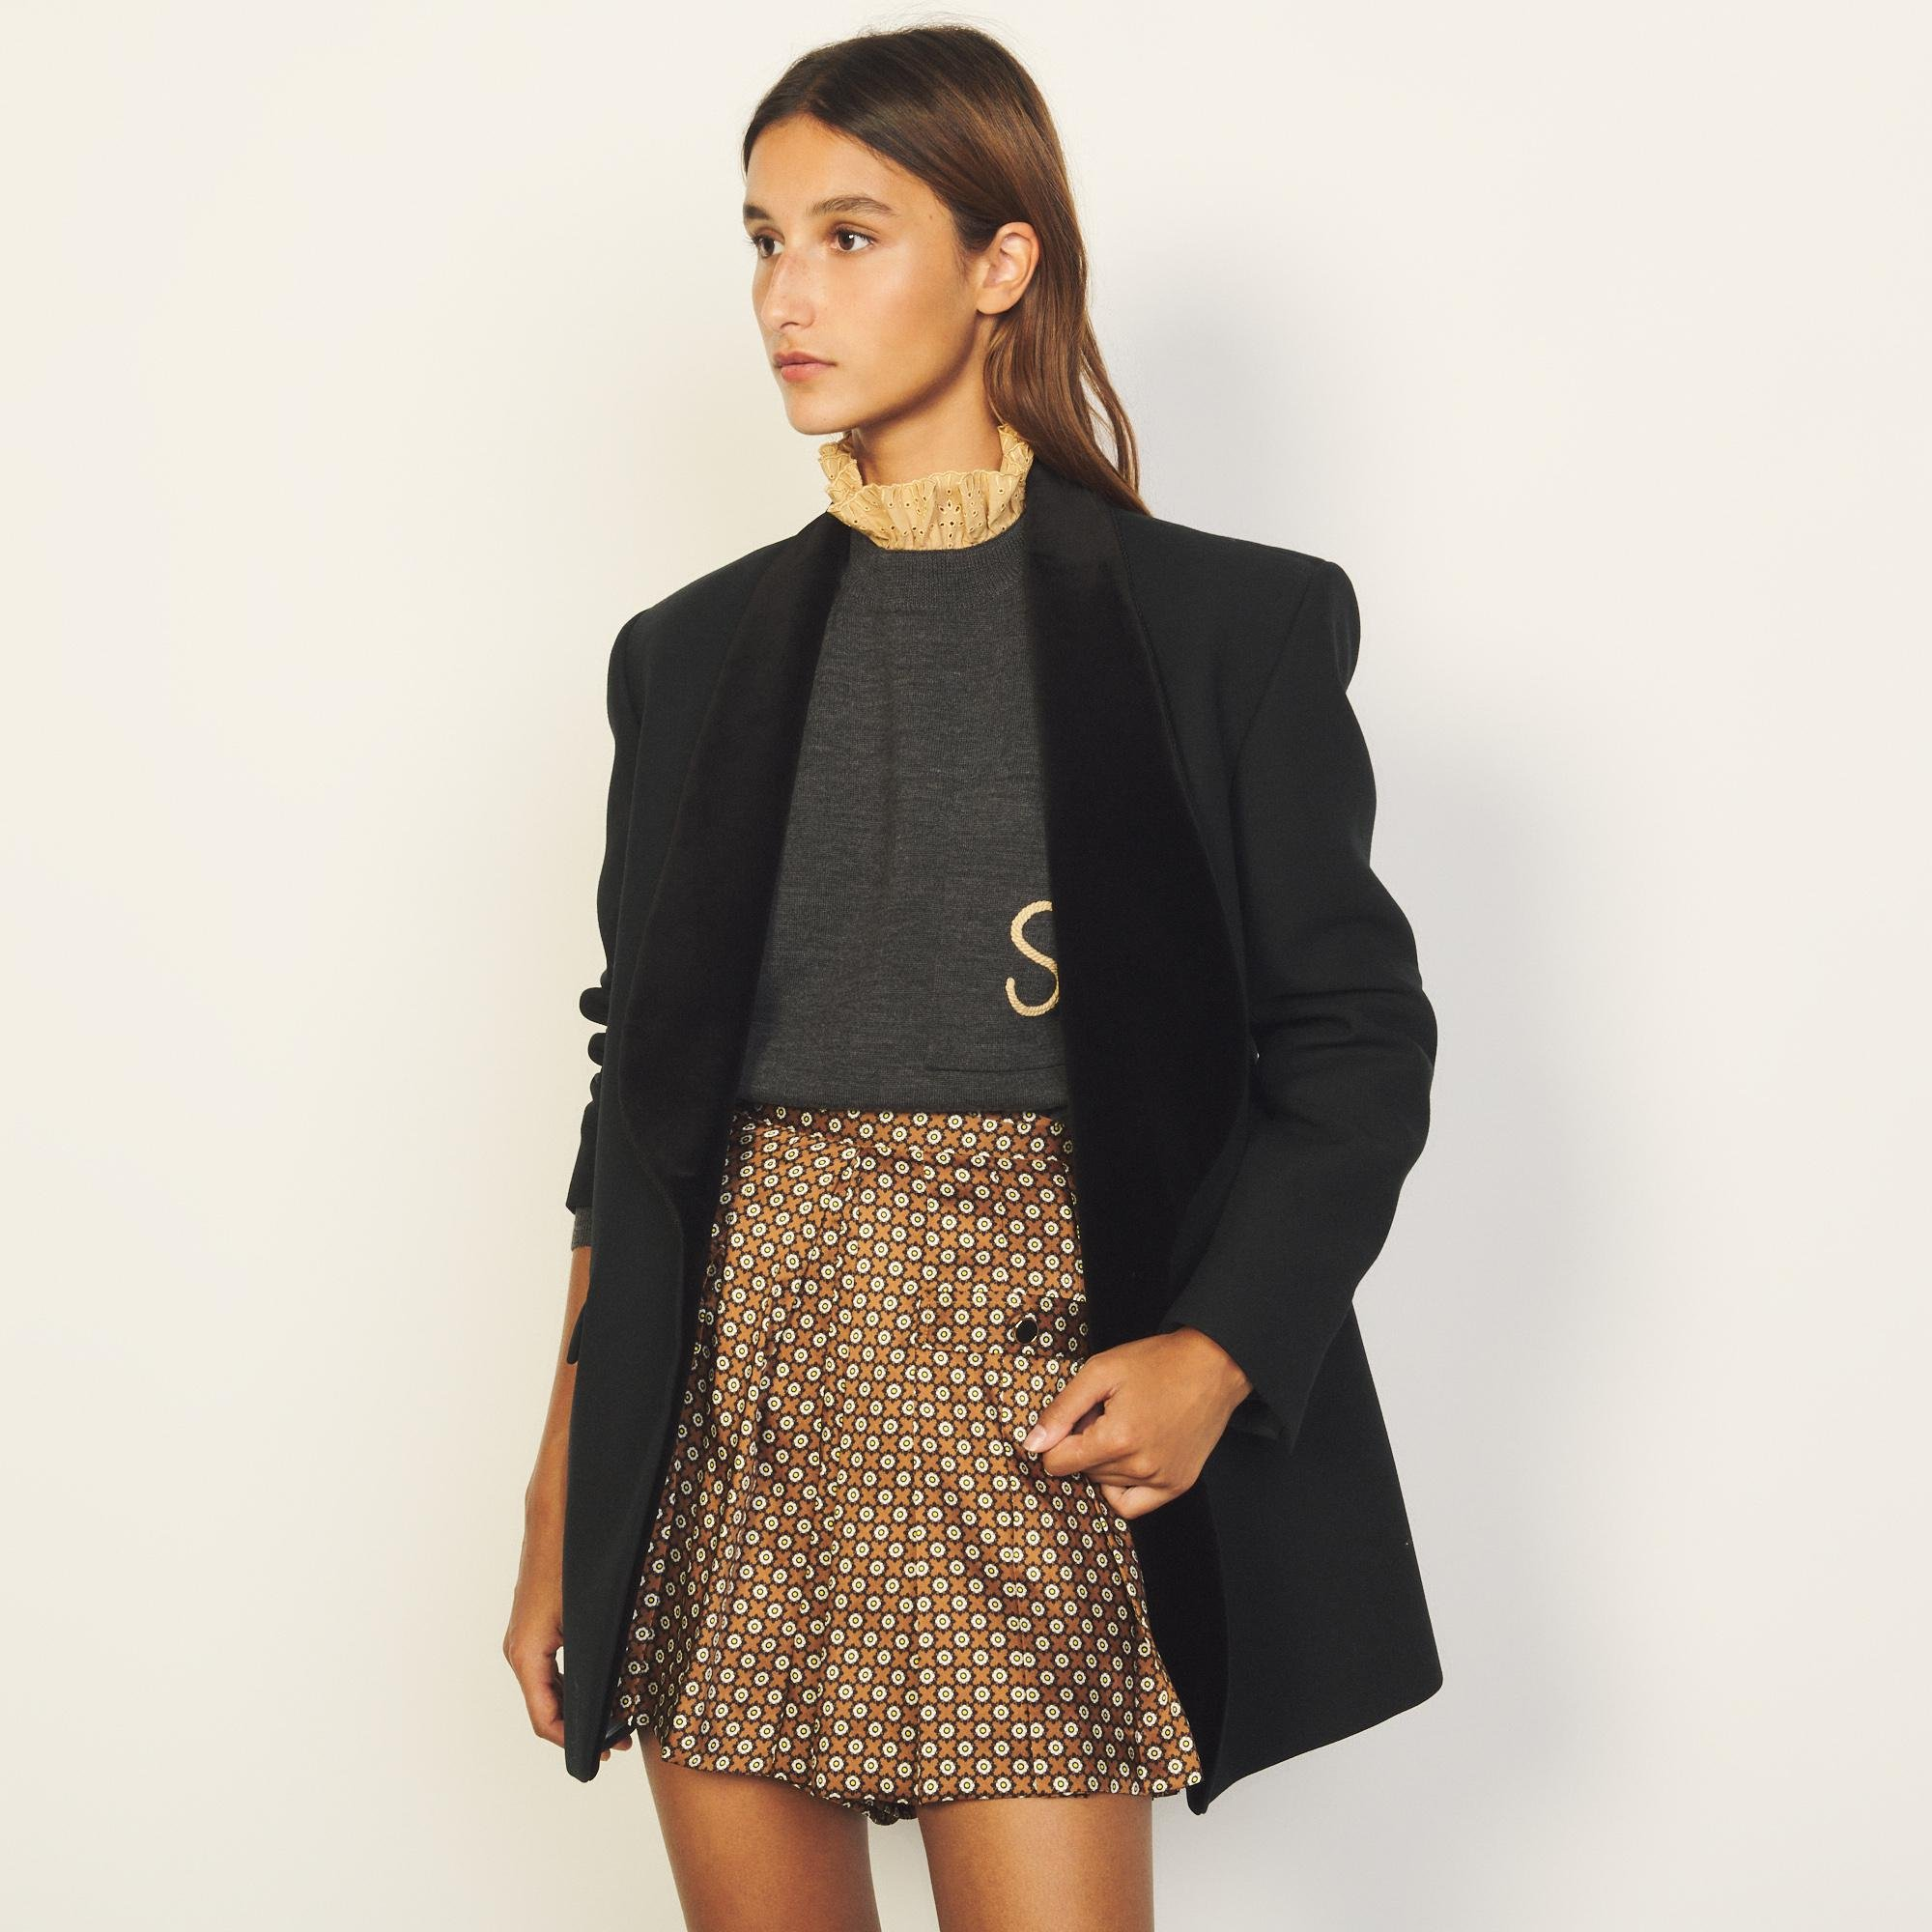 Sweater with contrasting ruffled collar